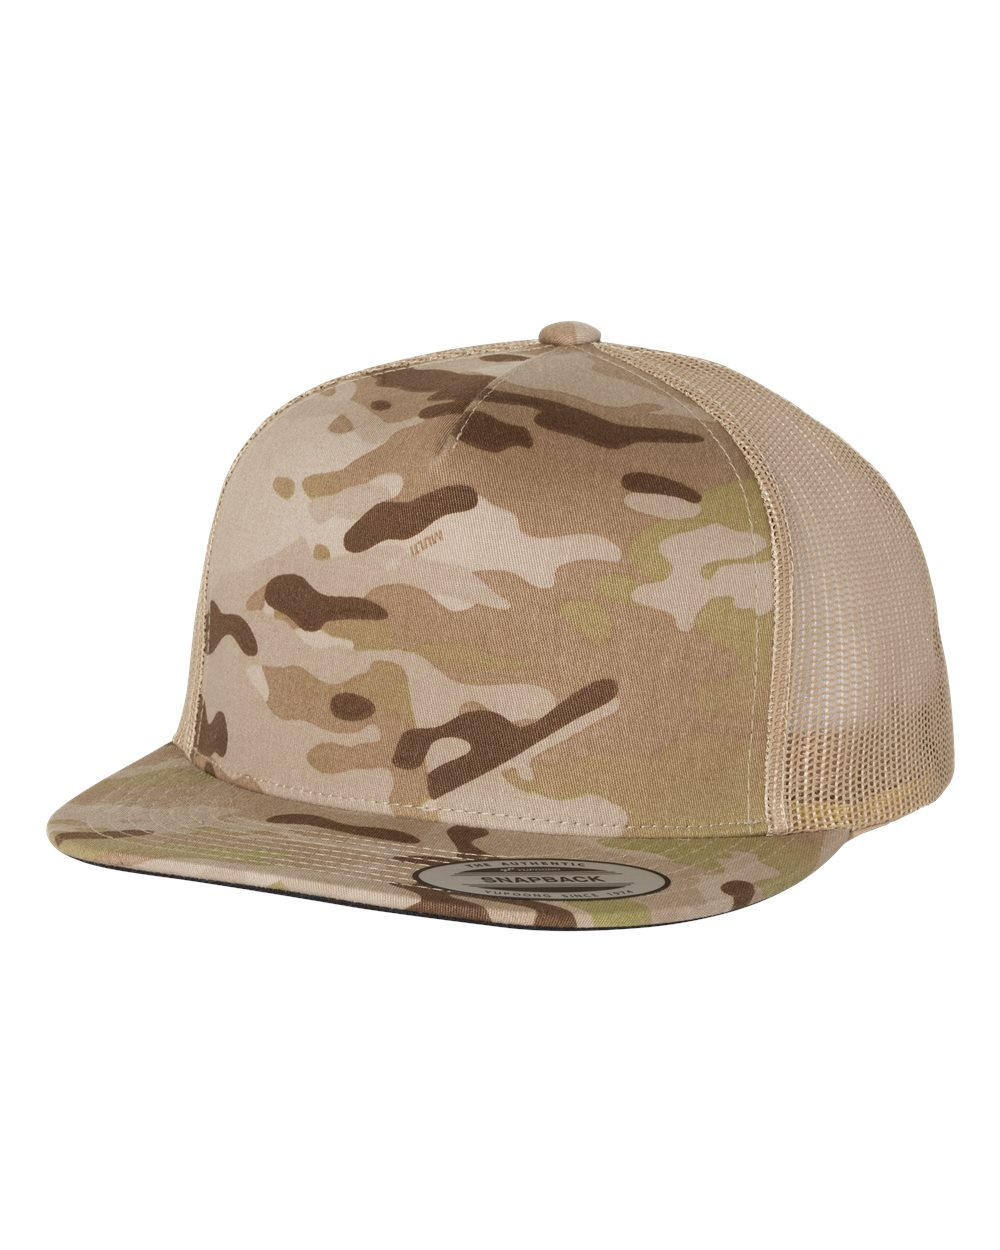 click to view Multicam Arid Tan